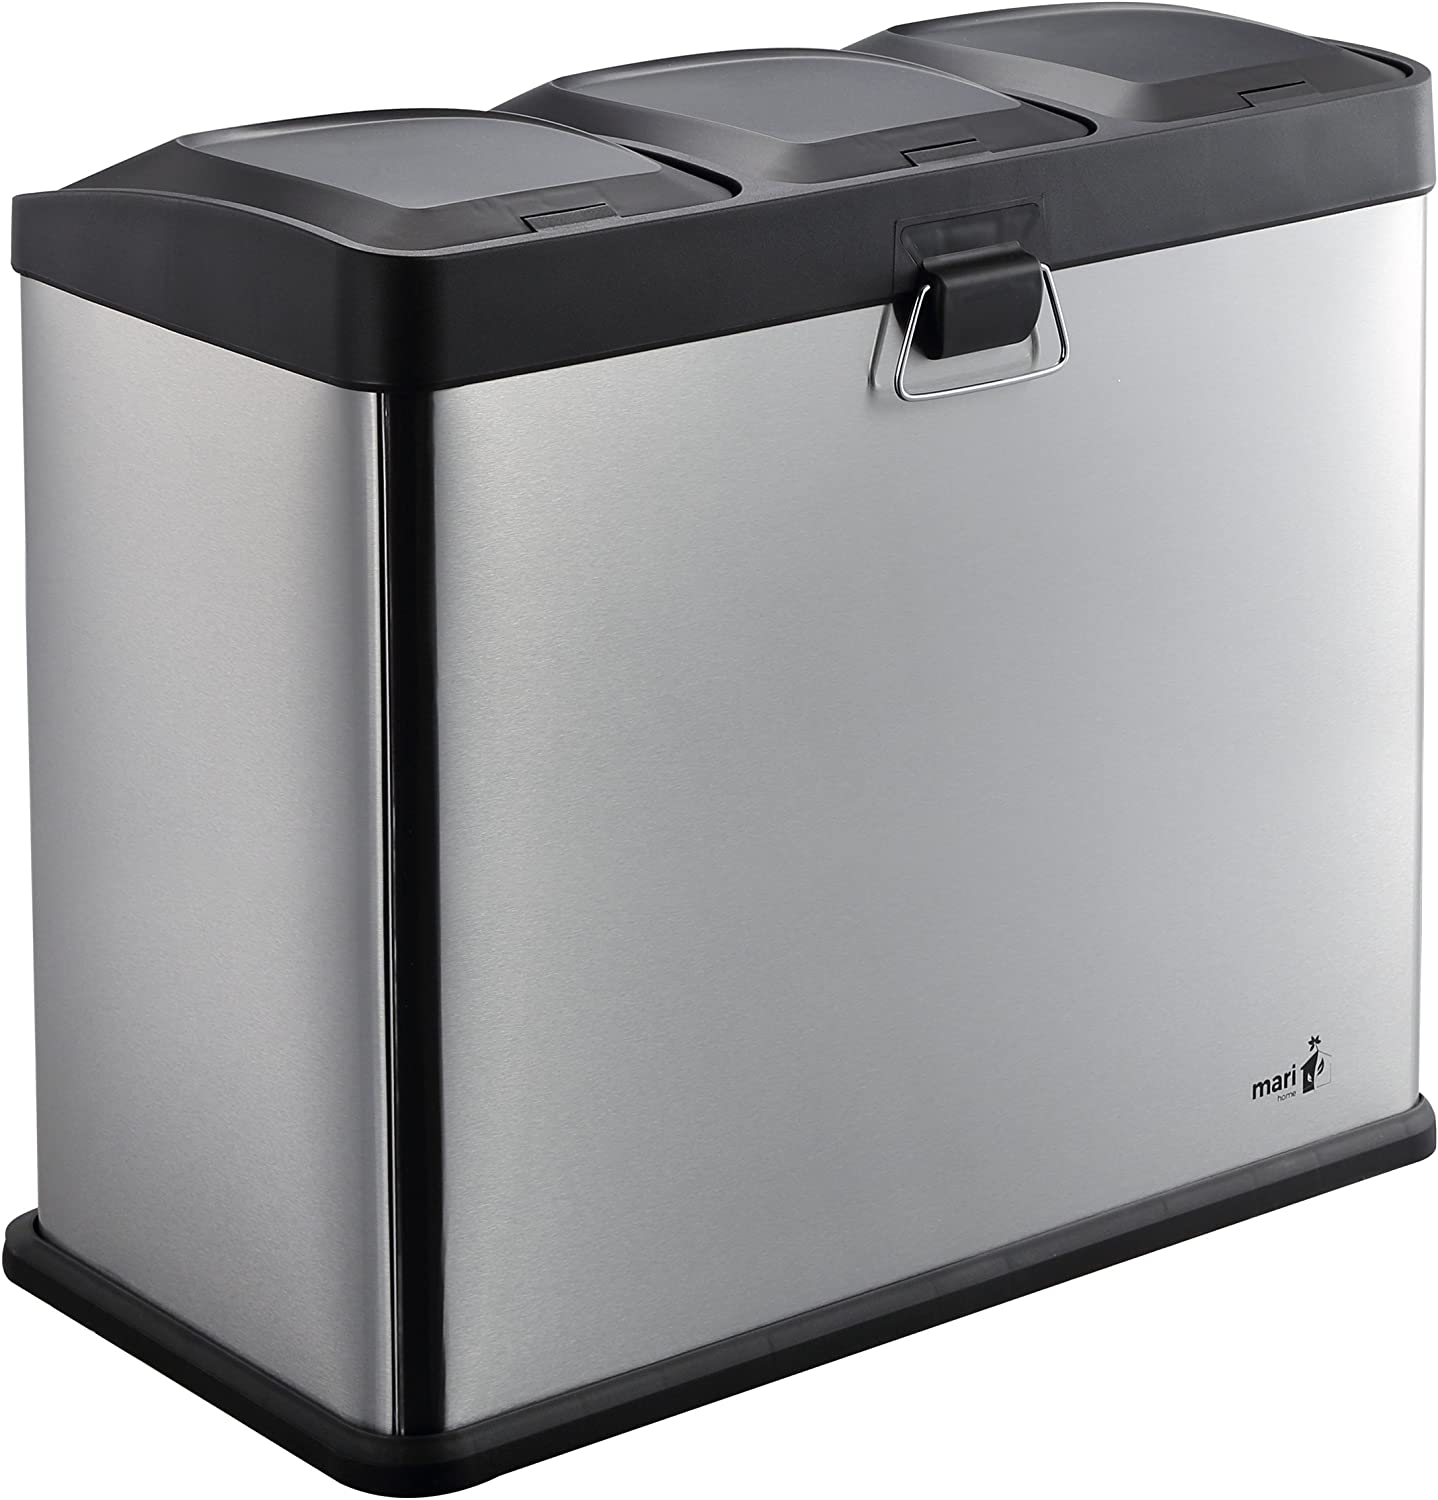 Great for Kitchen Office /& Home Fingerprint Proof Trash Bins with Pedal /& Inner Buckets Stainless Recycling Bin with 3 Compartments MARI HOME Large Rubbish Bin Triple Waste Bin 18L X 3 54L